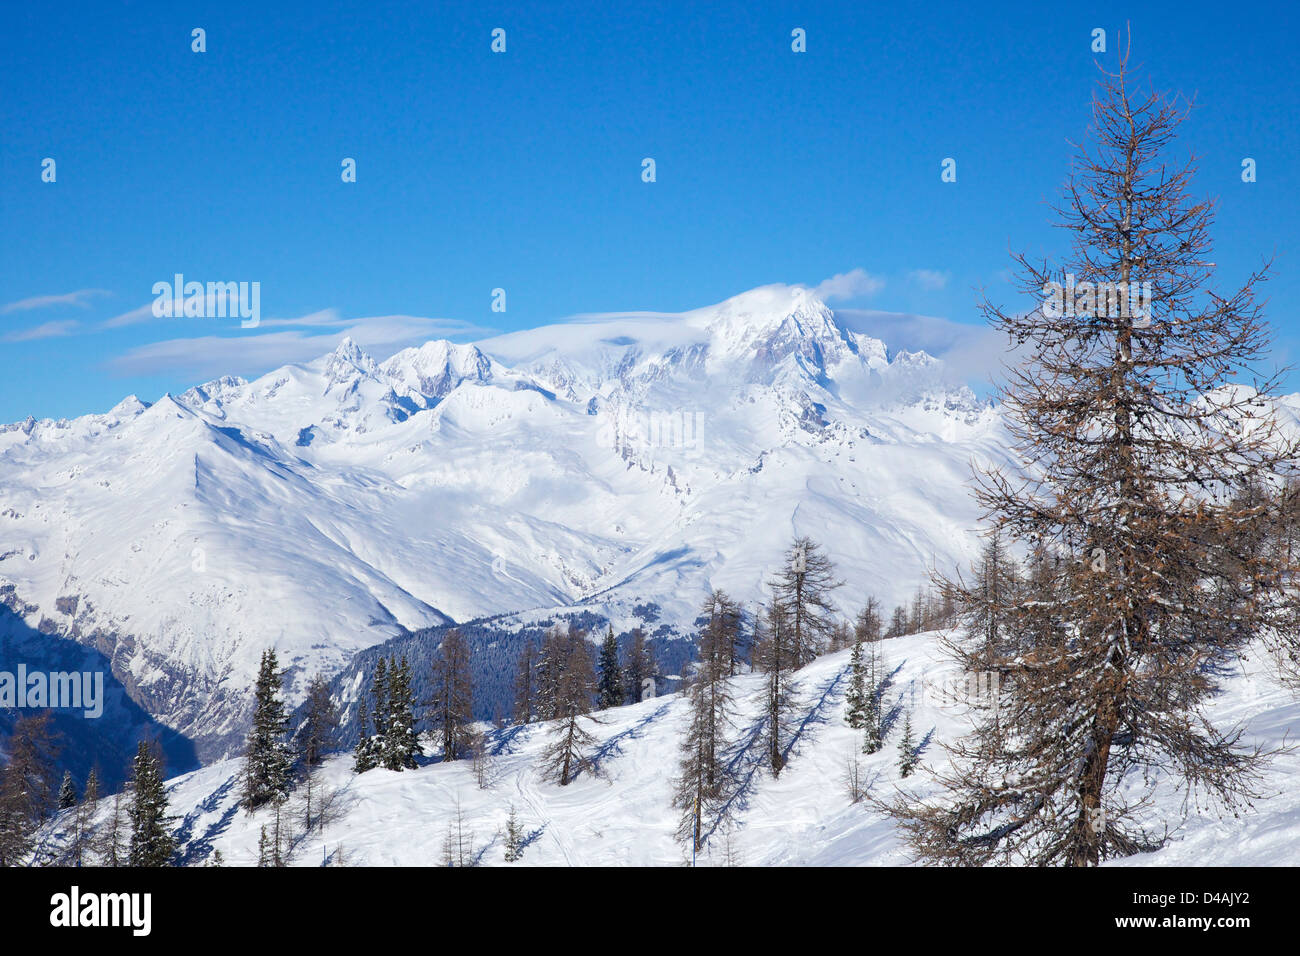 Mont Blanc from Peisey-Vallandry, Les Arcs, Savoie, France, Europe - Stock Image